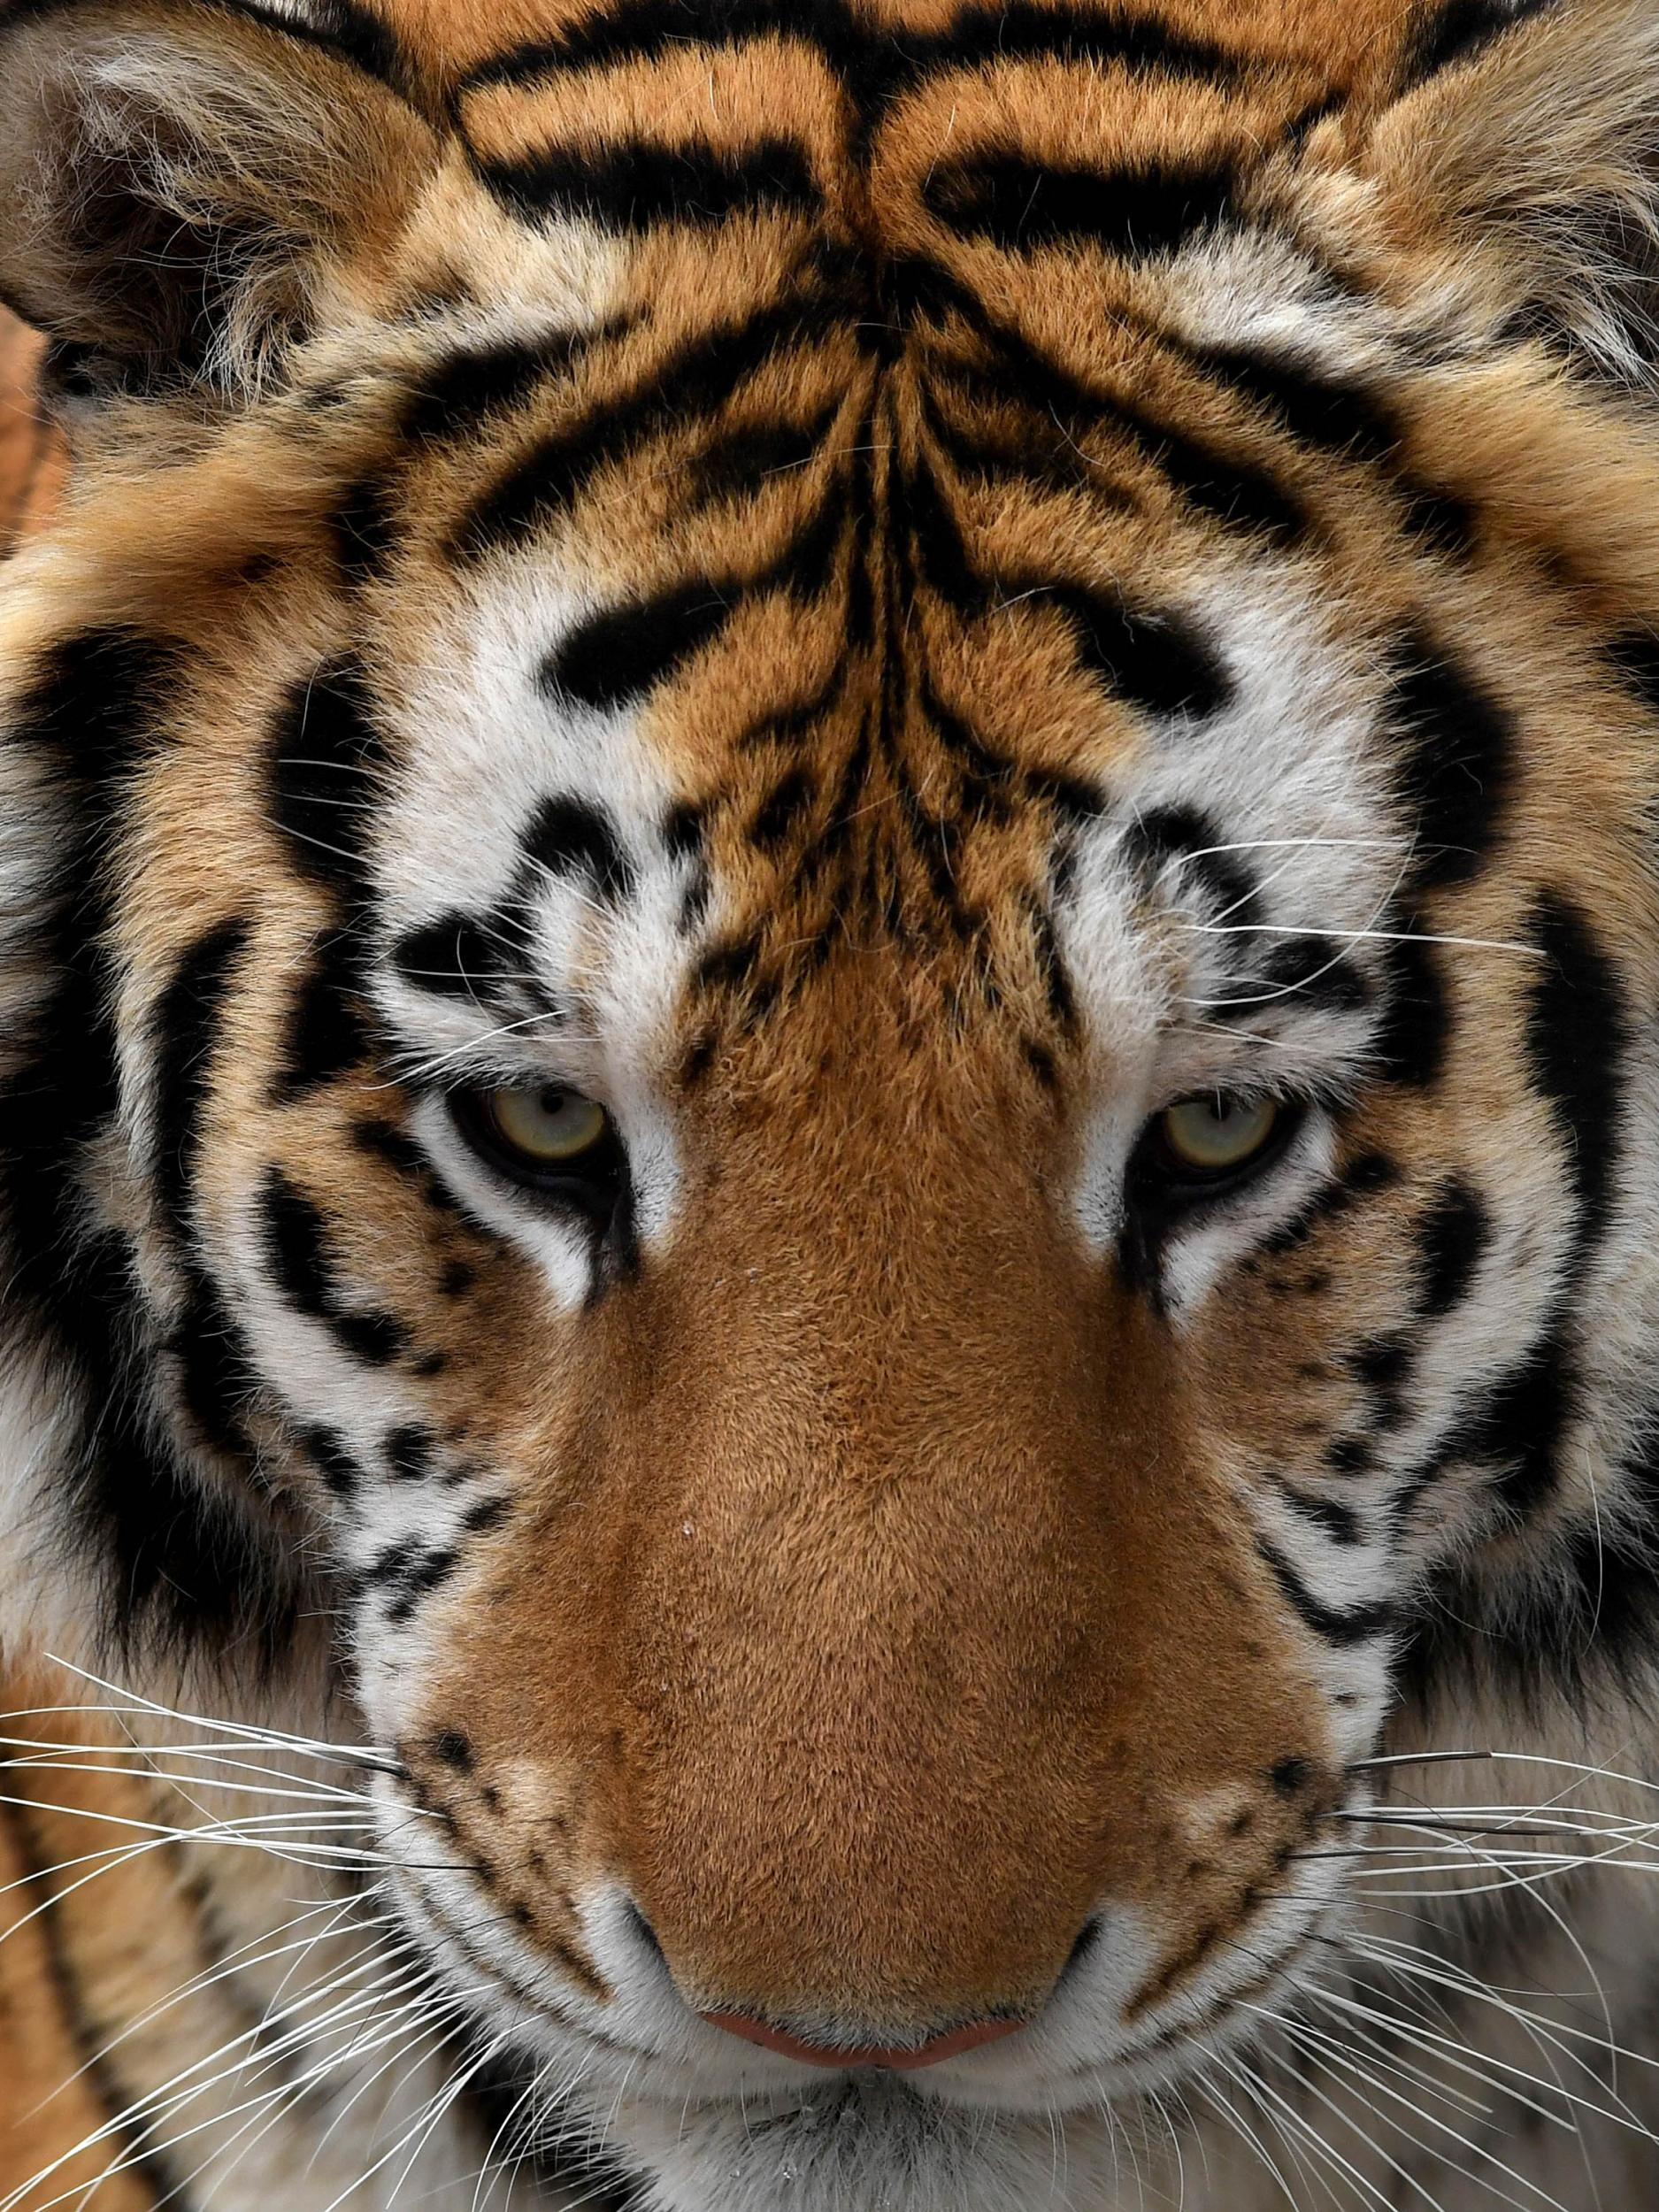 The problem with exotic animal ownership in America | The Independent